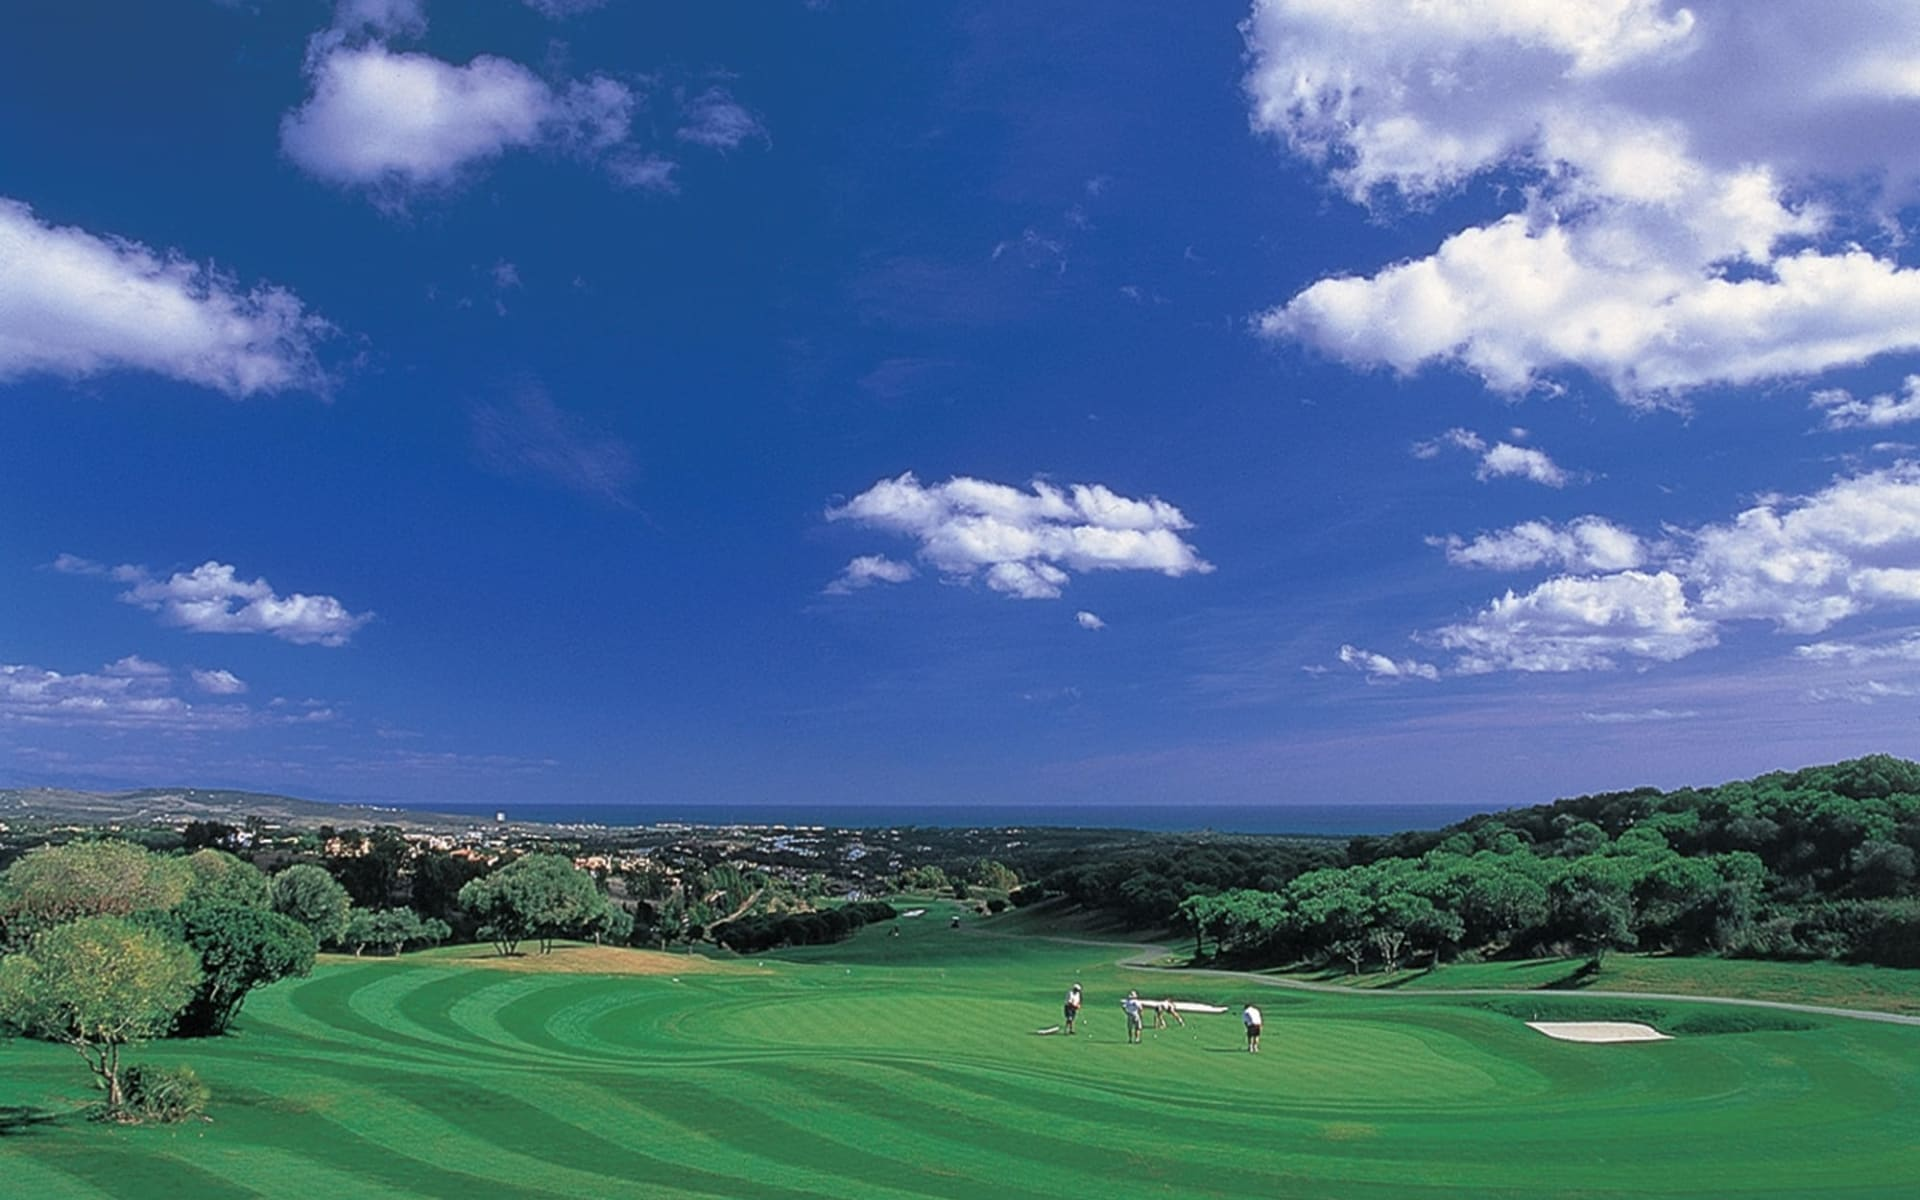 Hotel Almenara in Malaga: Almenara_9th Green